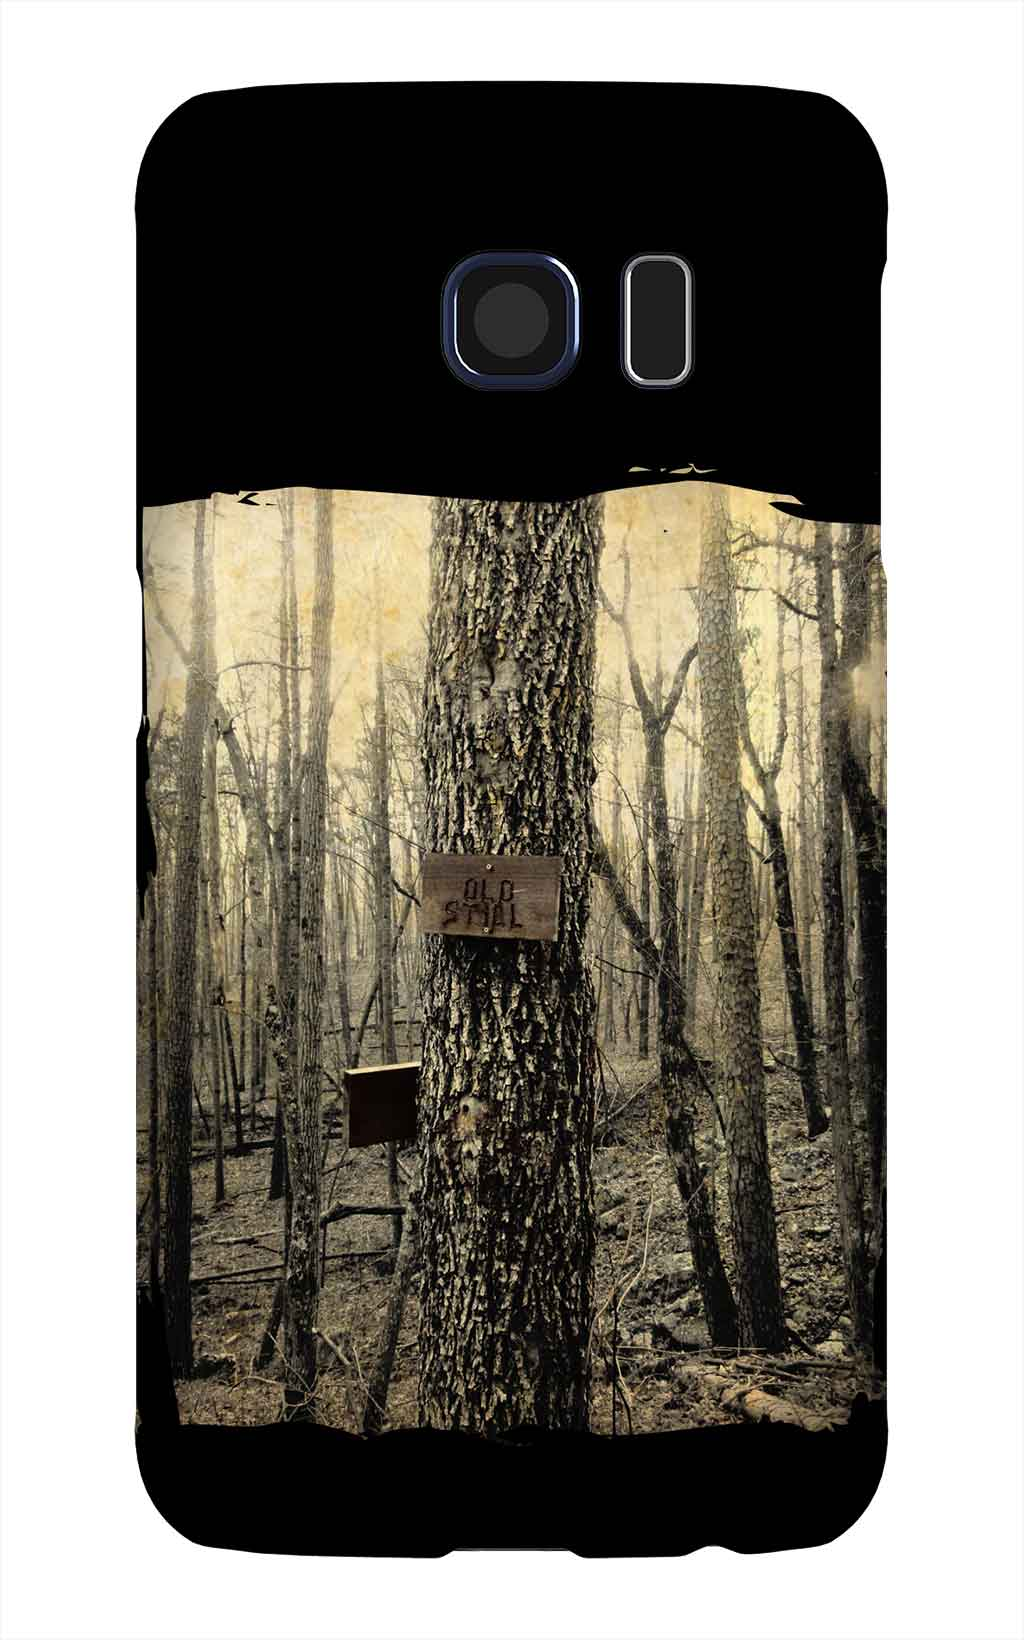 Product, Cellphone Case: Old Still - Tree with sign that says Old Still in Lake Guntersville State Park, Alabama